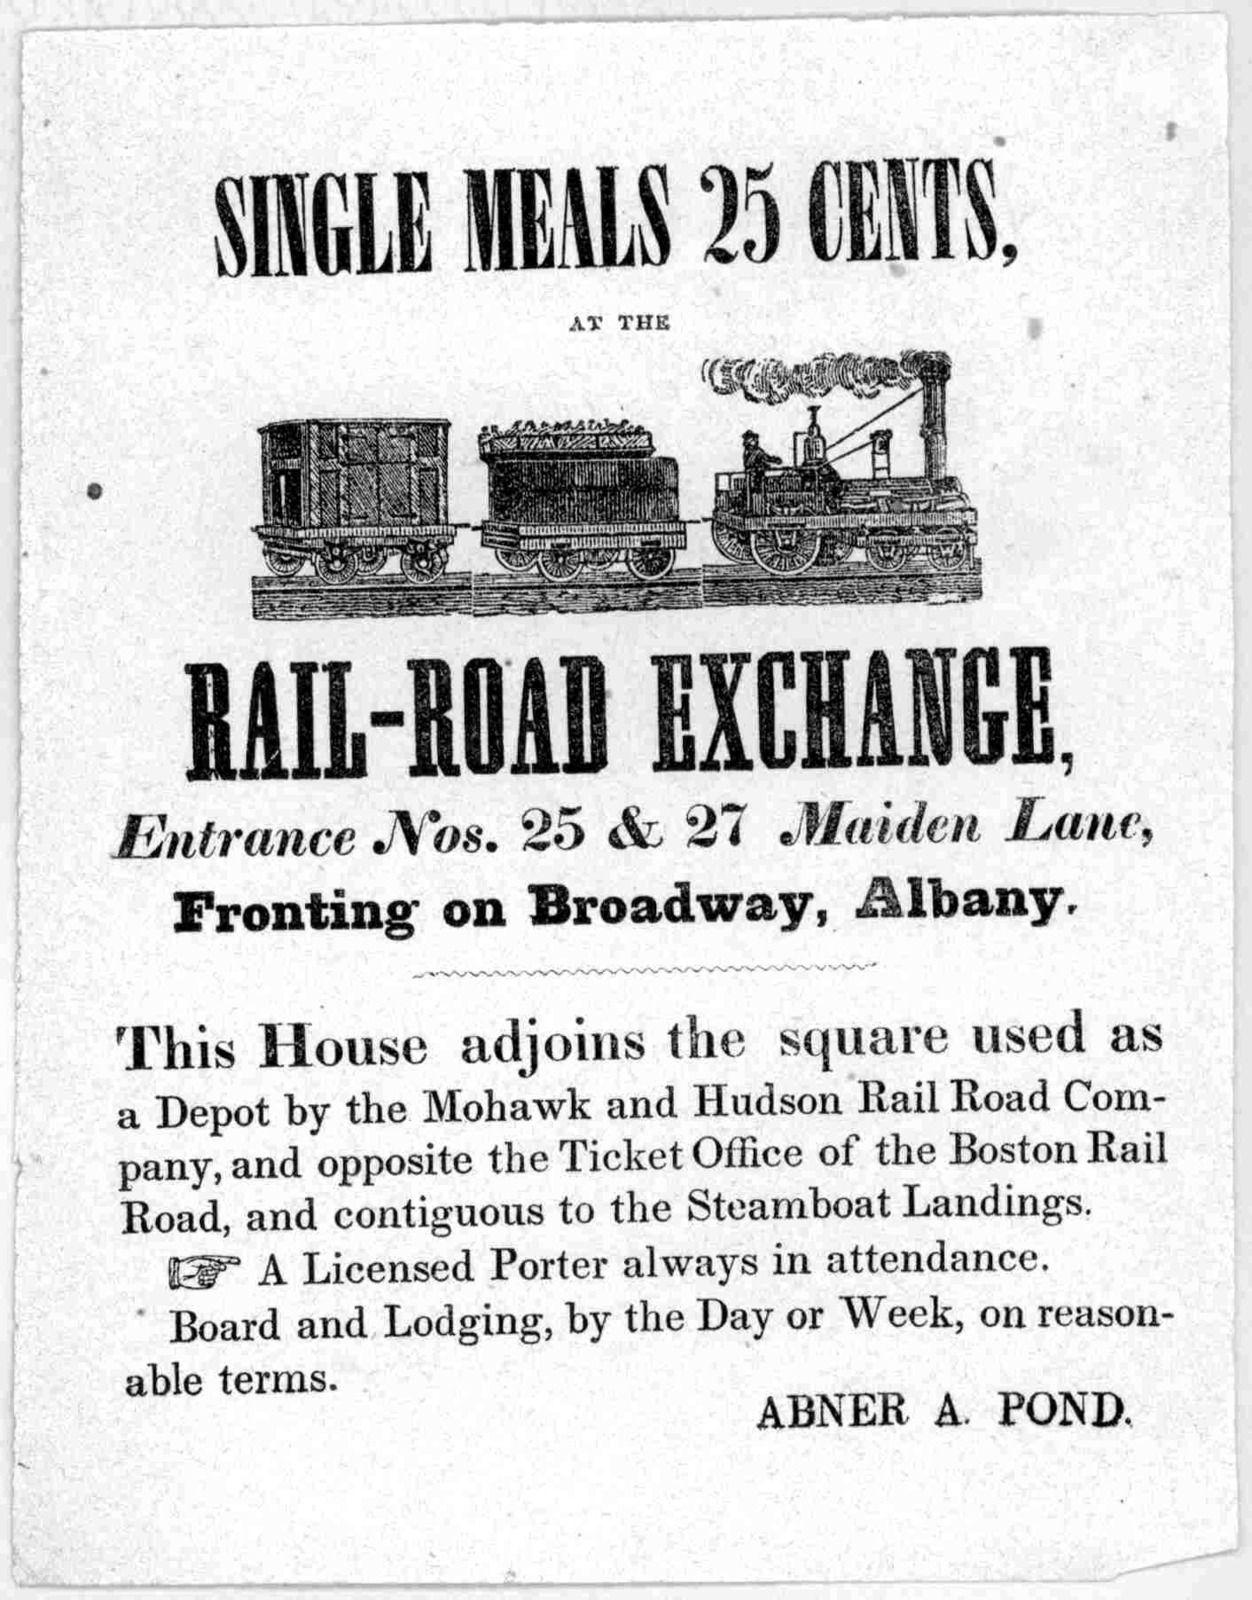 Single meals 25 cents, at the Rail-road exchange, entrance Nos. 25 & 27 Maiden Lane, fronting on Broadway, Albany. ... Abner A. Pound [1847?].